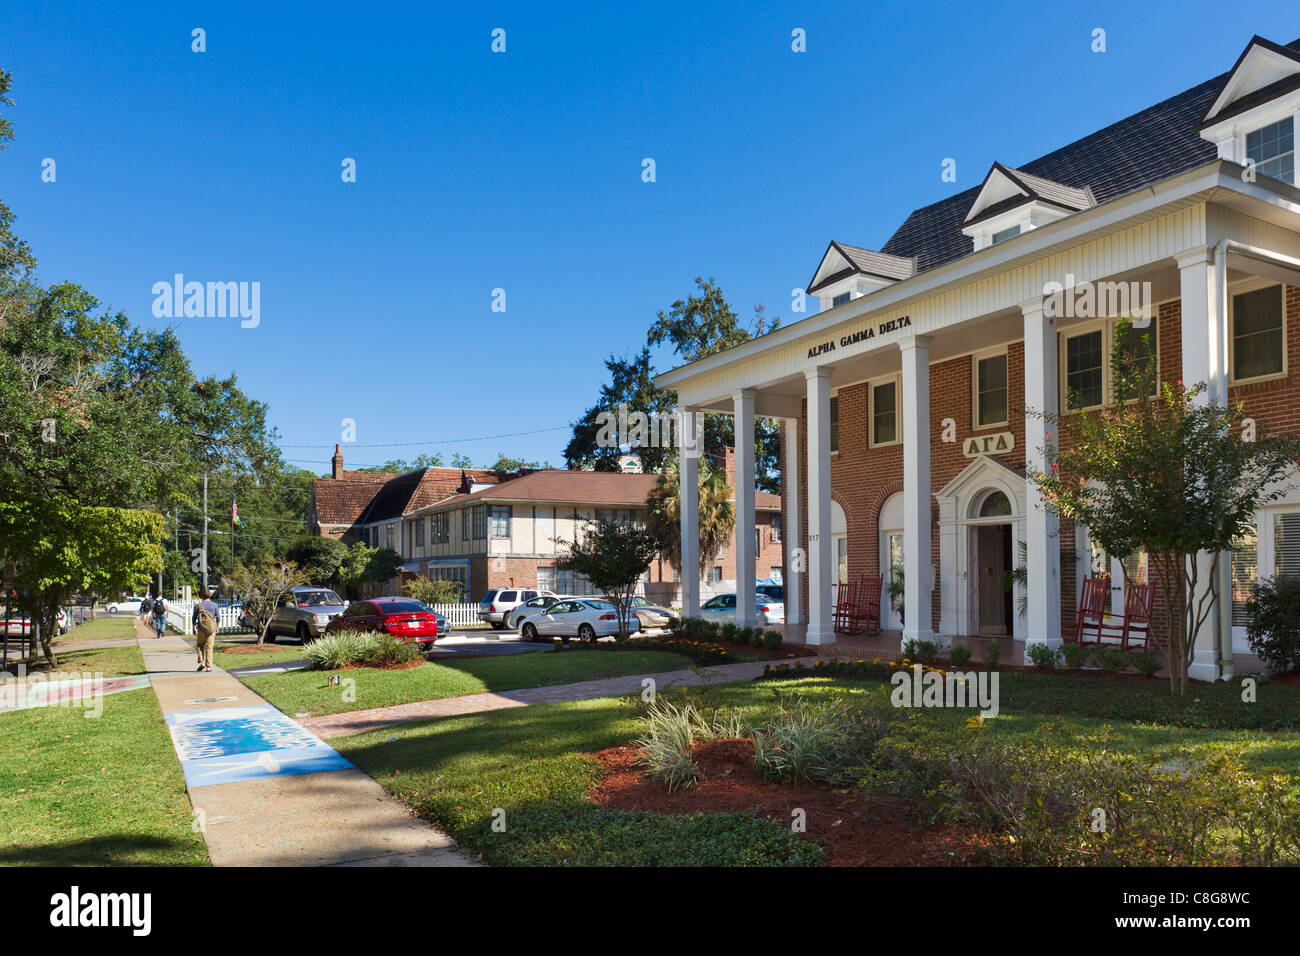 Alpha Gamma Delta women's fraternity house at Florida State University, Tallahassee, Florida, USA - Stock Image